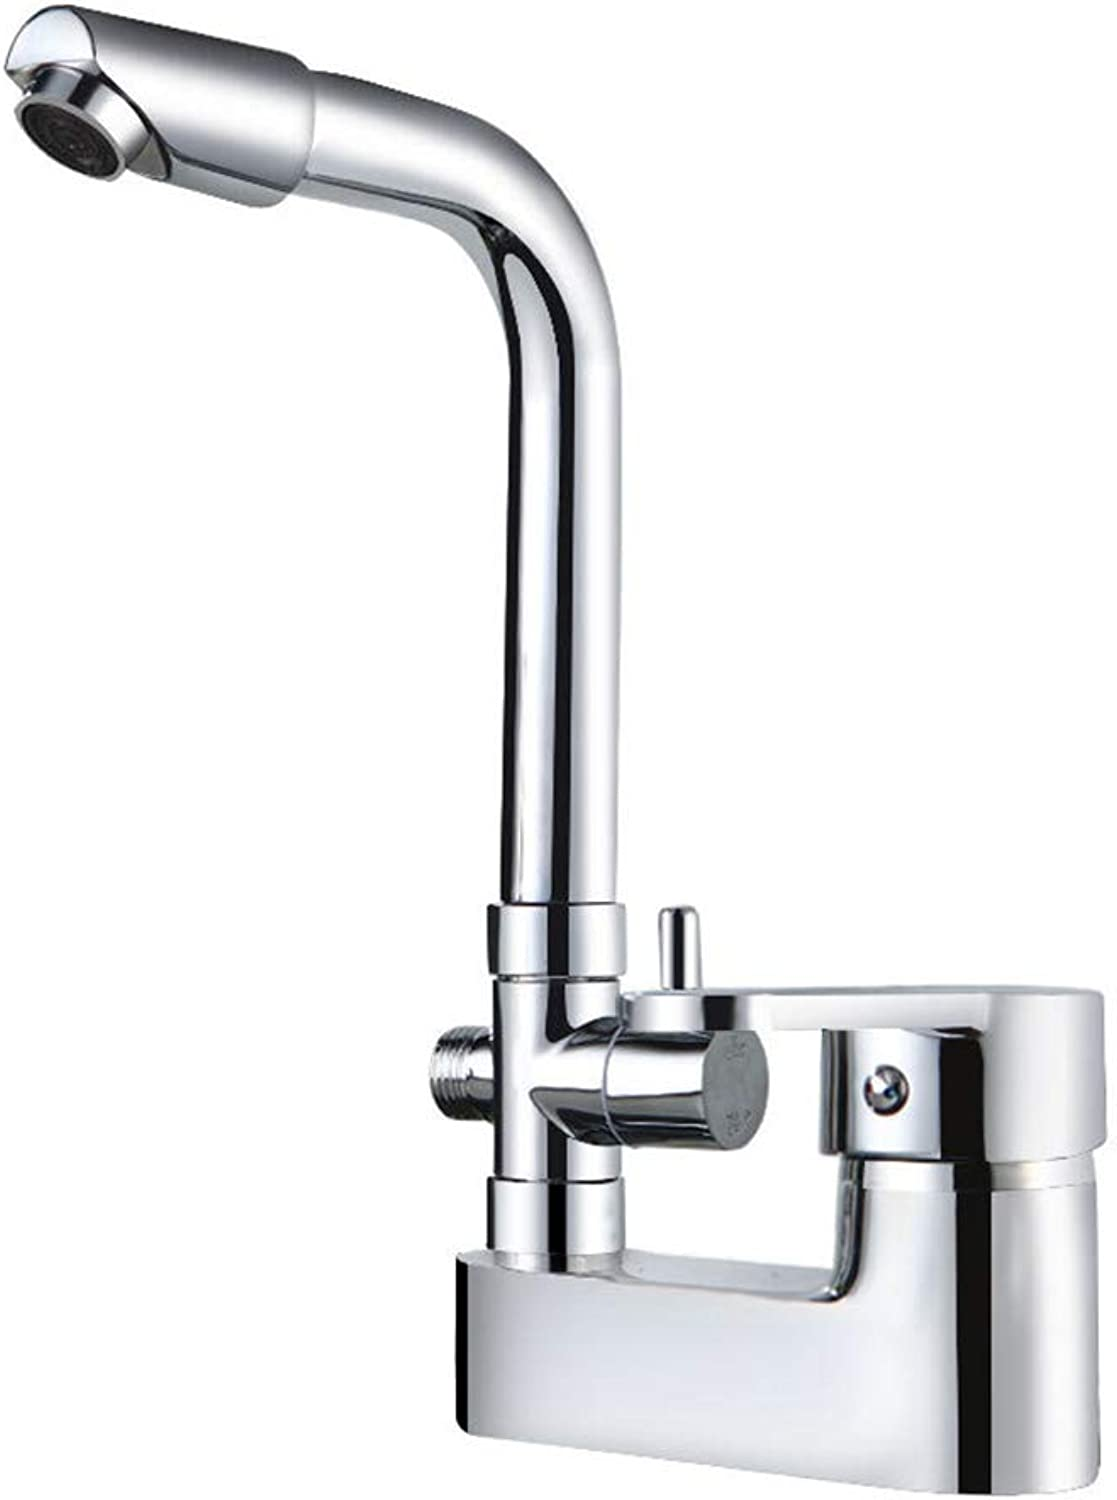 Asheng Faucet Kitchen Tap Single Handle Tall Body Kitchen Sink Mixer Tap Solid Brass Construction High Arch Stainless Steel Spout Nozzle